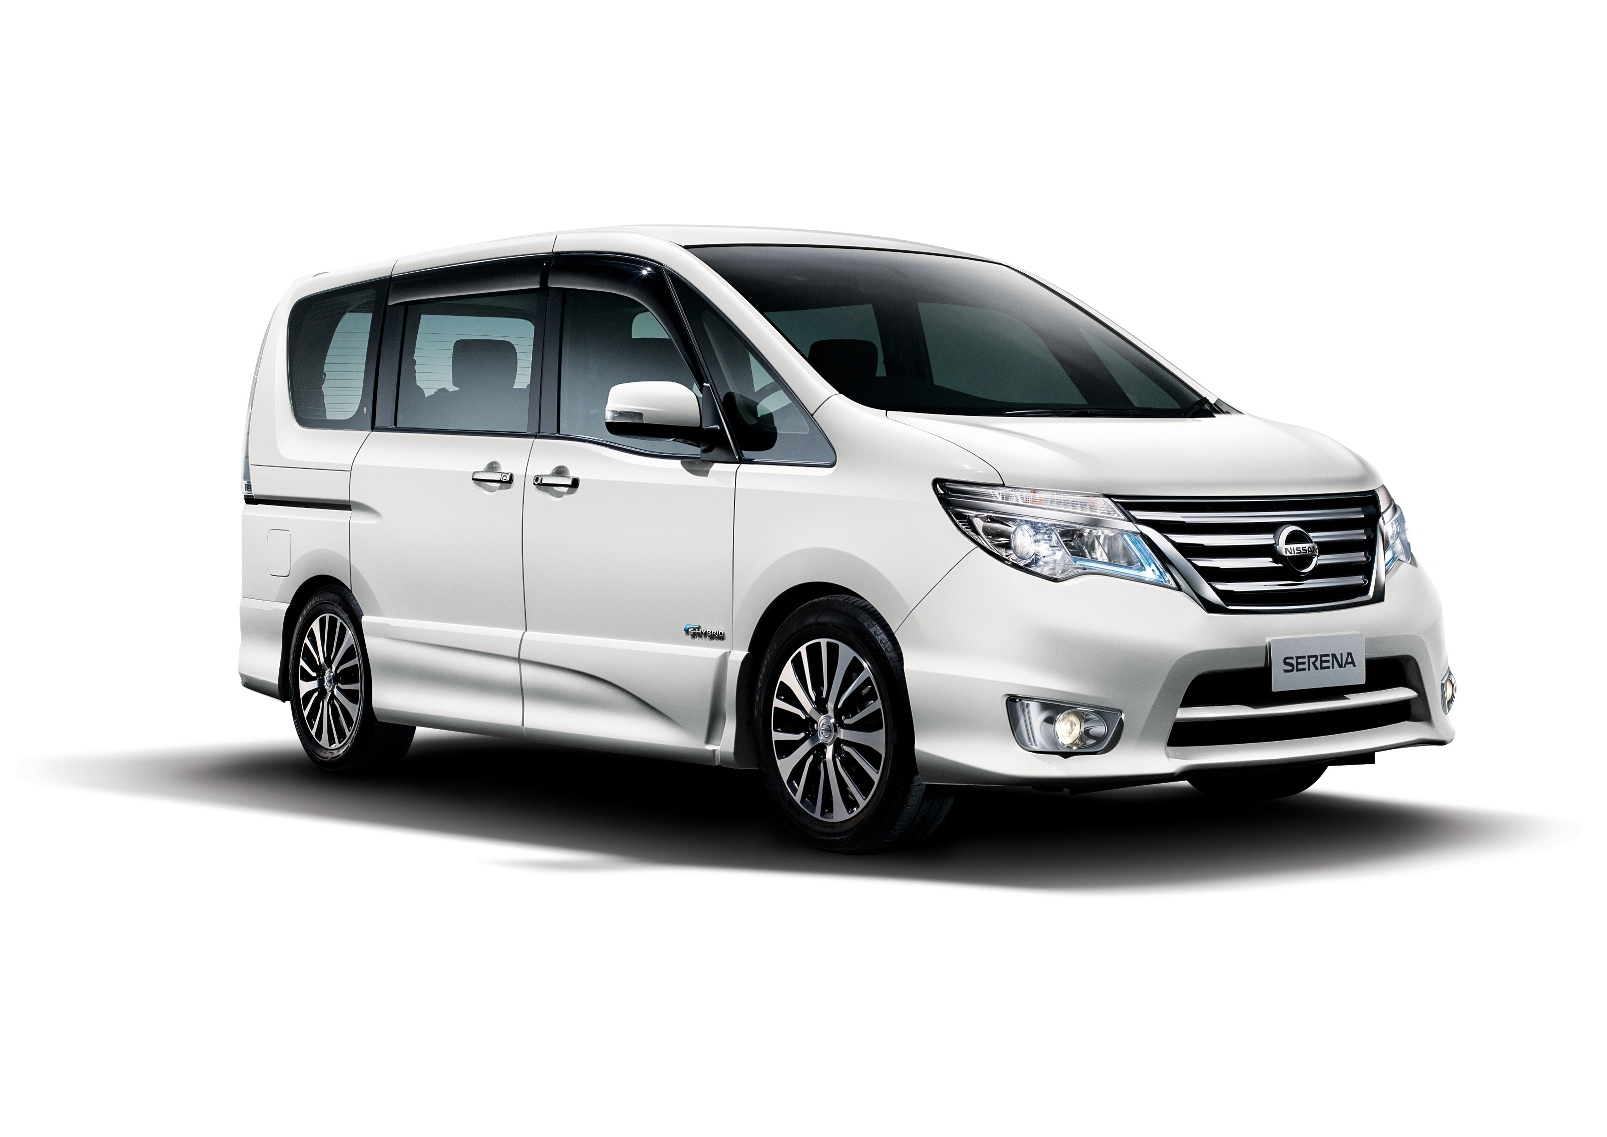 new nissan serena autos weblog. Black Bedroom Furniture Sets. Home Design Ideas